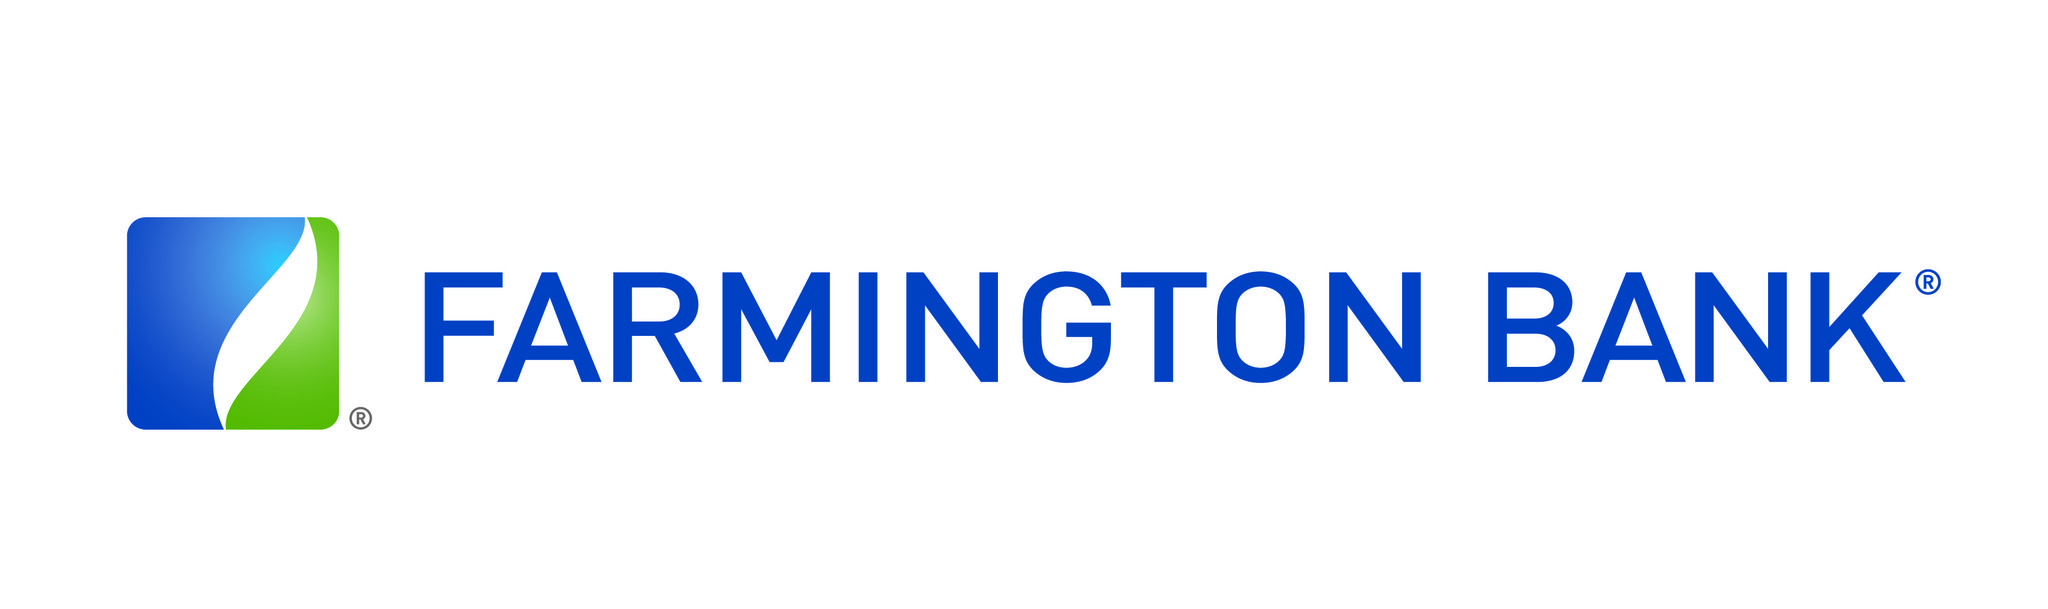 hc-farmington-bank-third-quarter-earnings-20141023